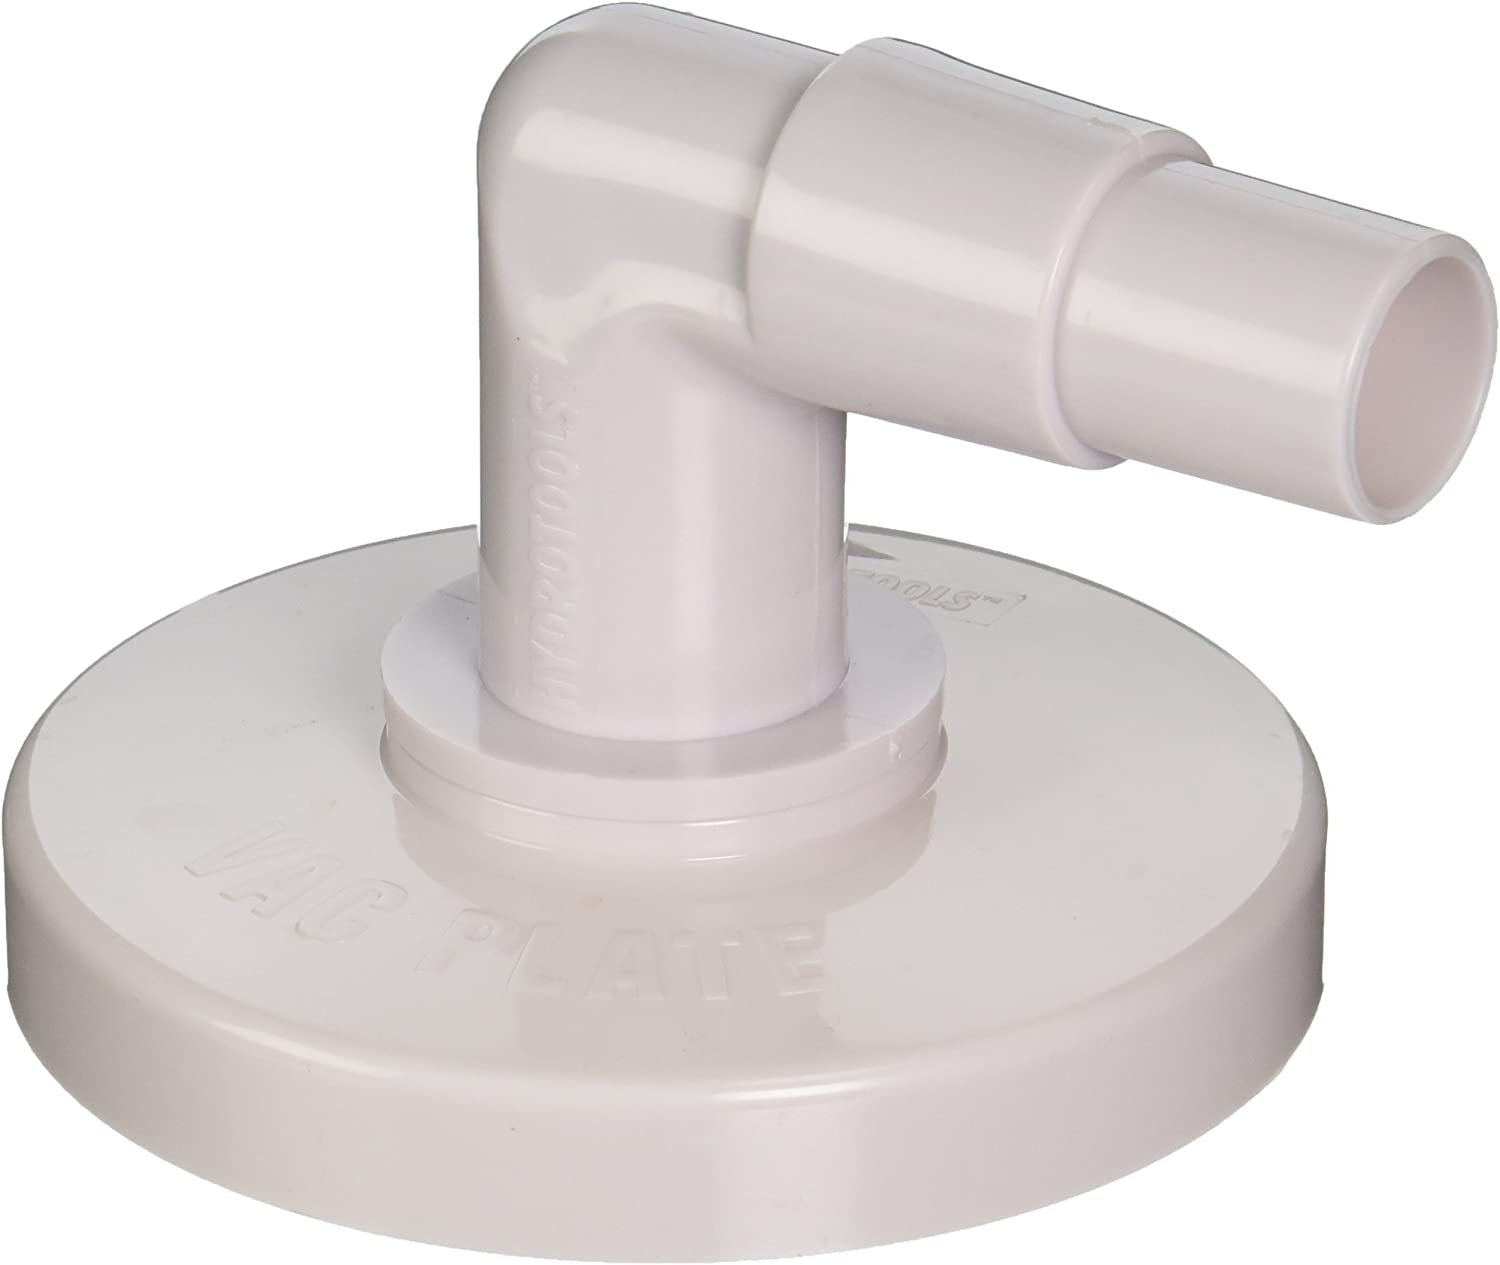 Hayward SP11041 Skim Vac Above-Ground Pool Skimmer